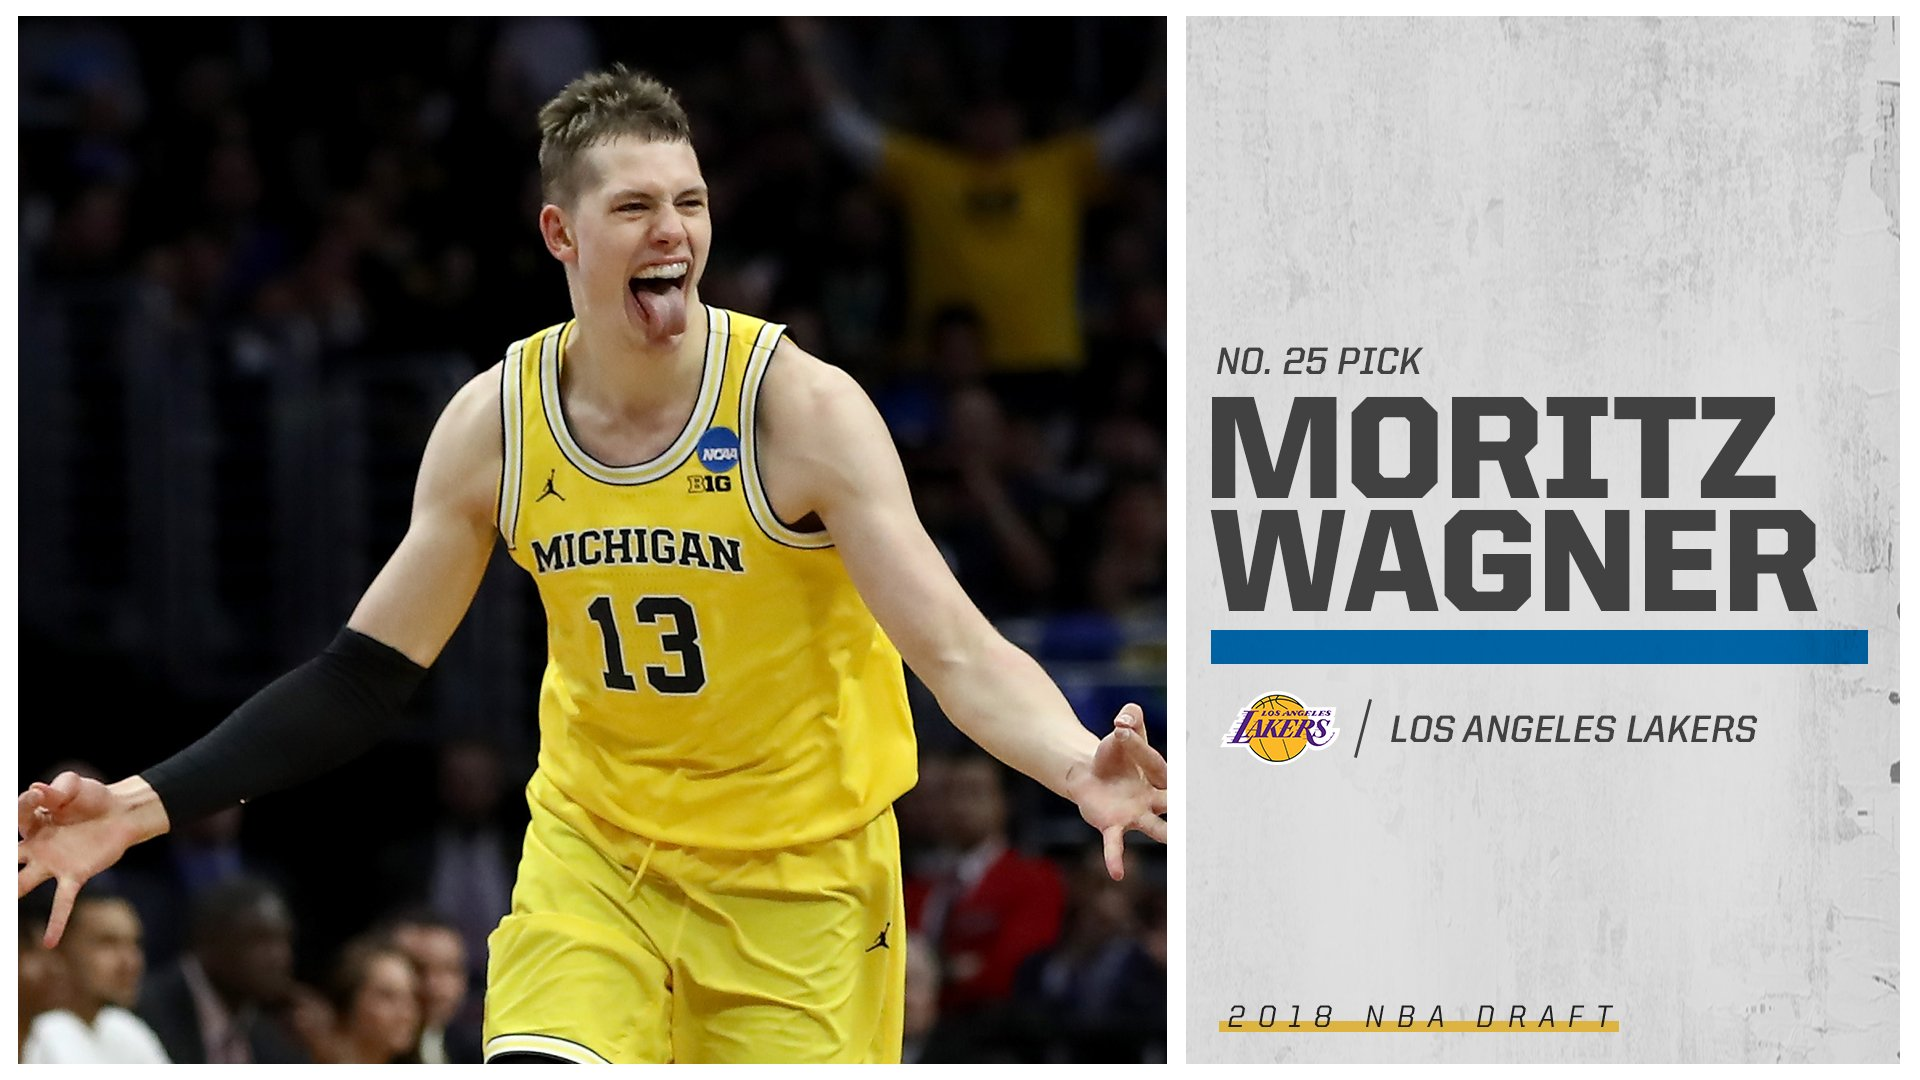 With the No. 25 pick, Moritz Wagner is headed to the Lakers! https://t.co/MnT98m8H59